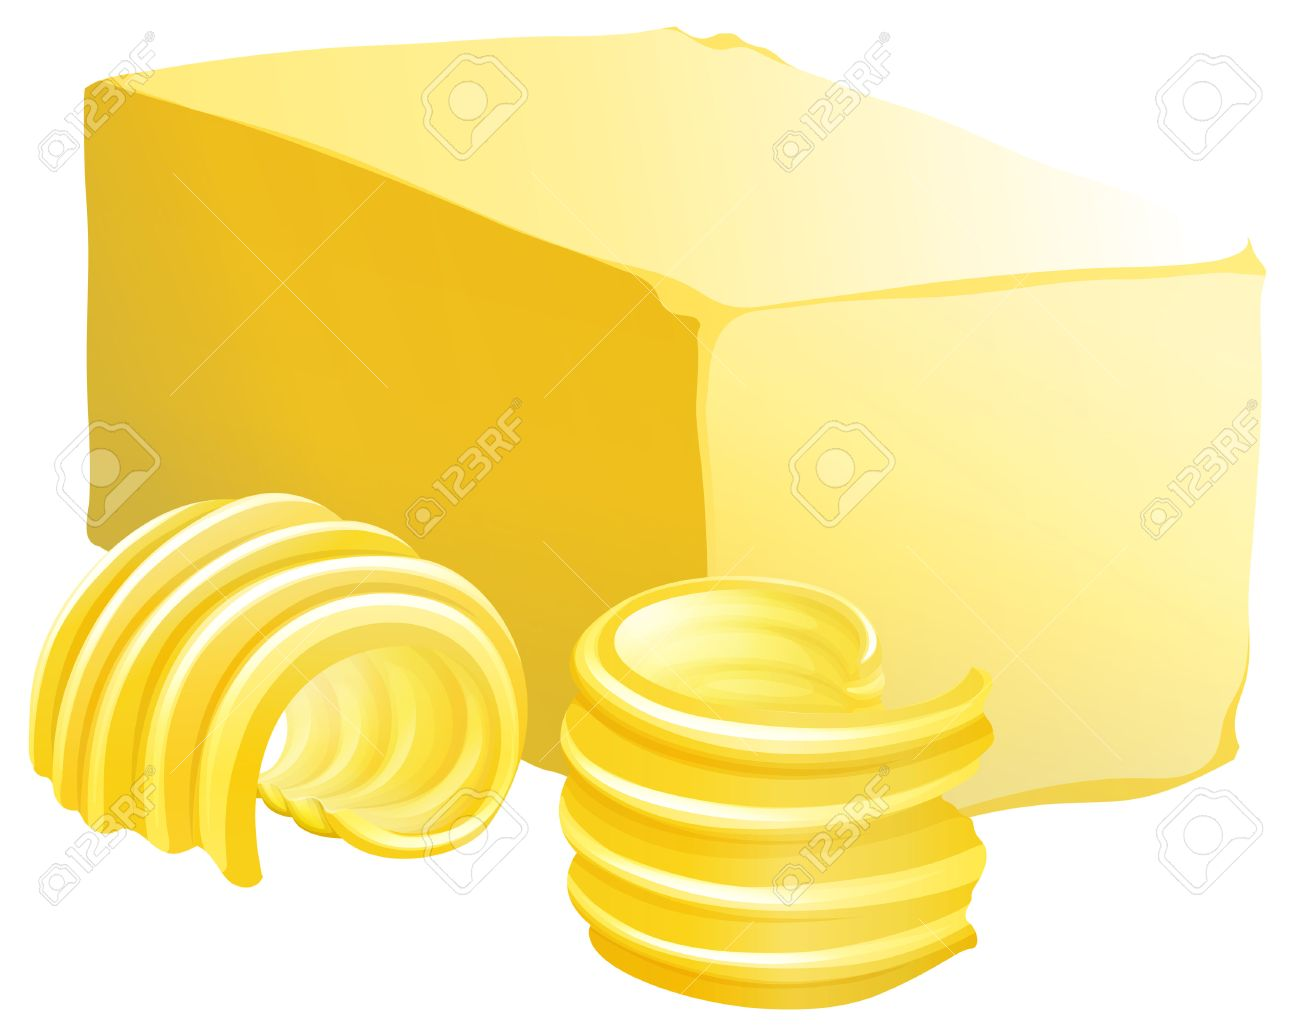 Bar of butter with two slices on the side.